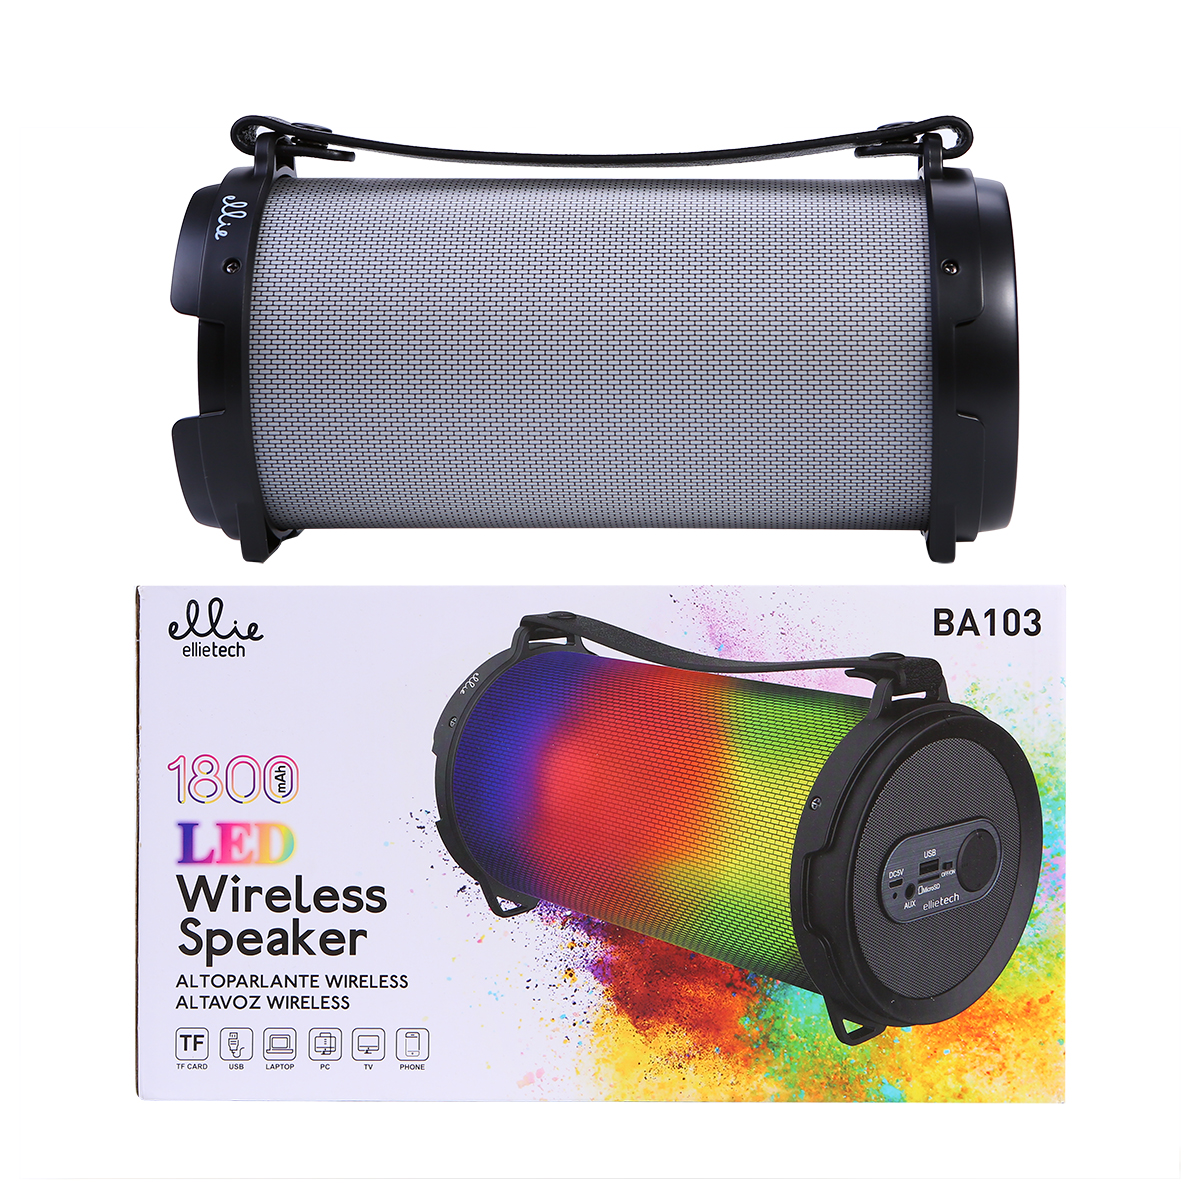 Ellietech BA103 Altavoz Wireless 1800mAh LED